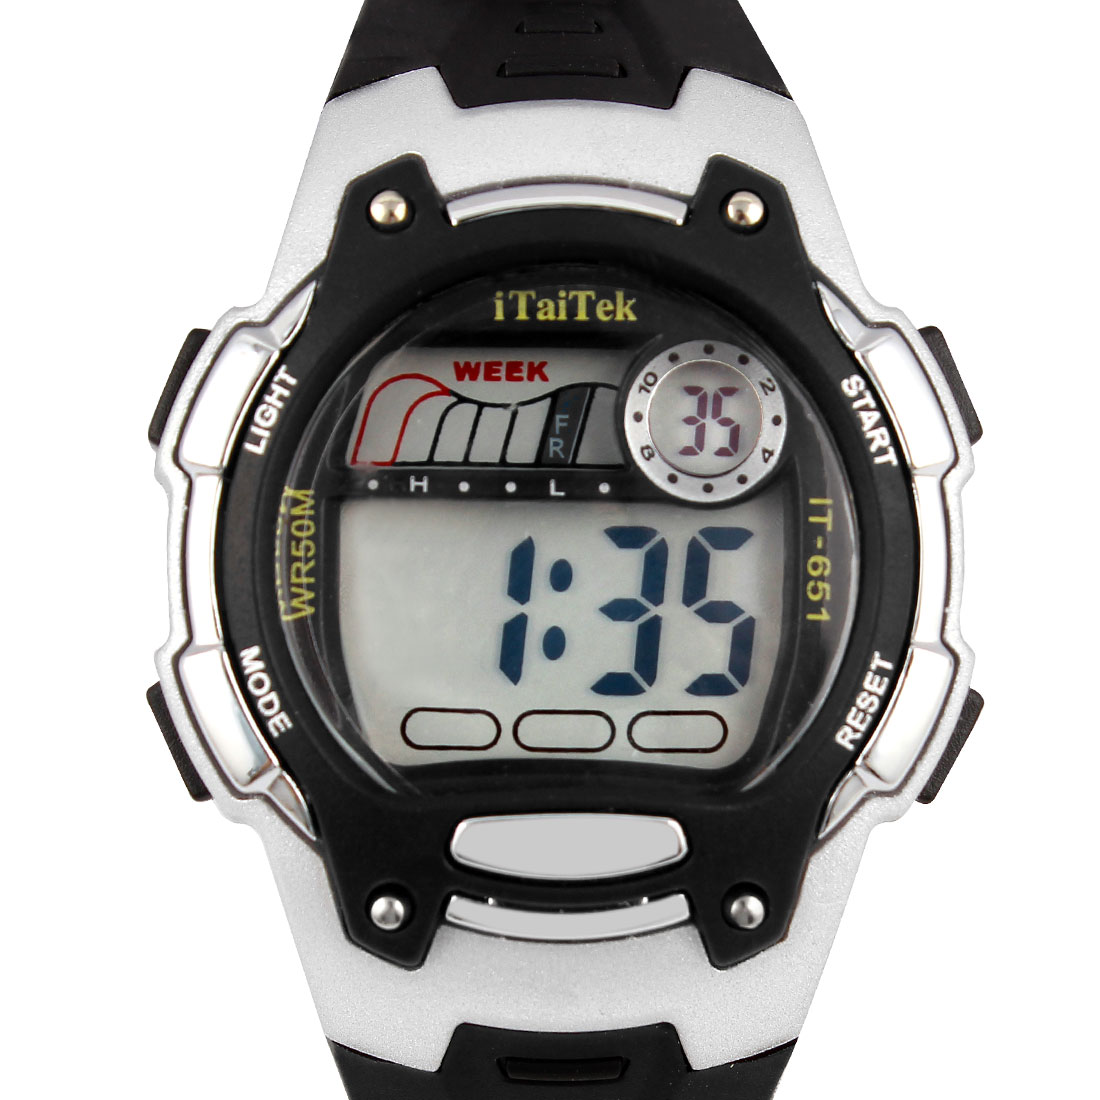 Black Silver Tone LCD Display Adjustable Wristband Digital Sports Watch w Case